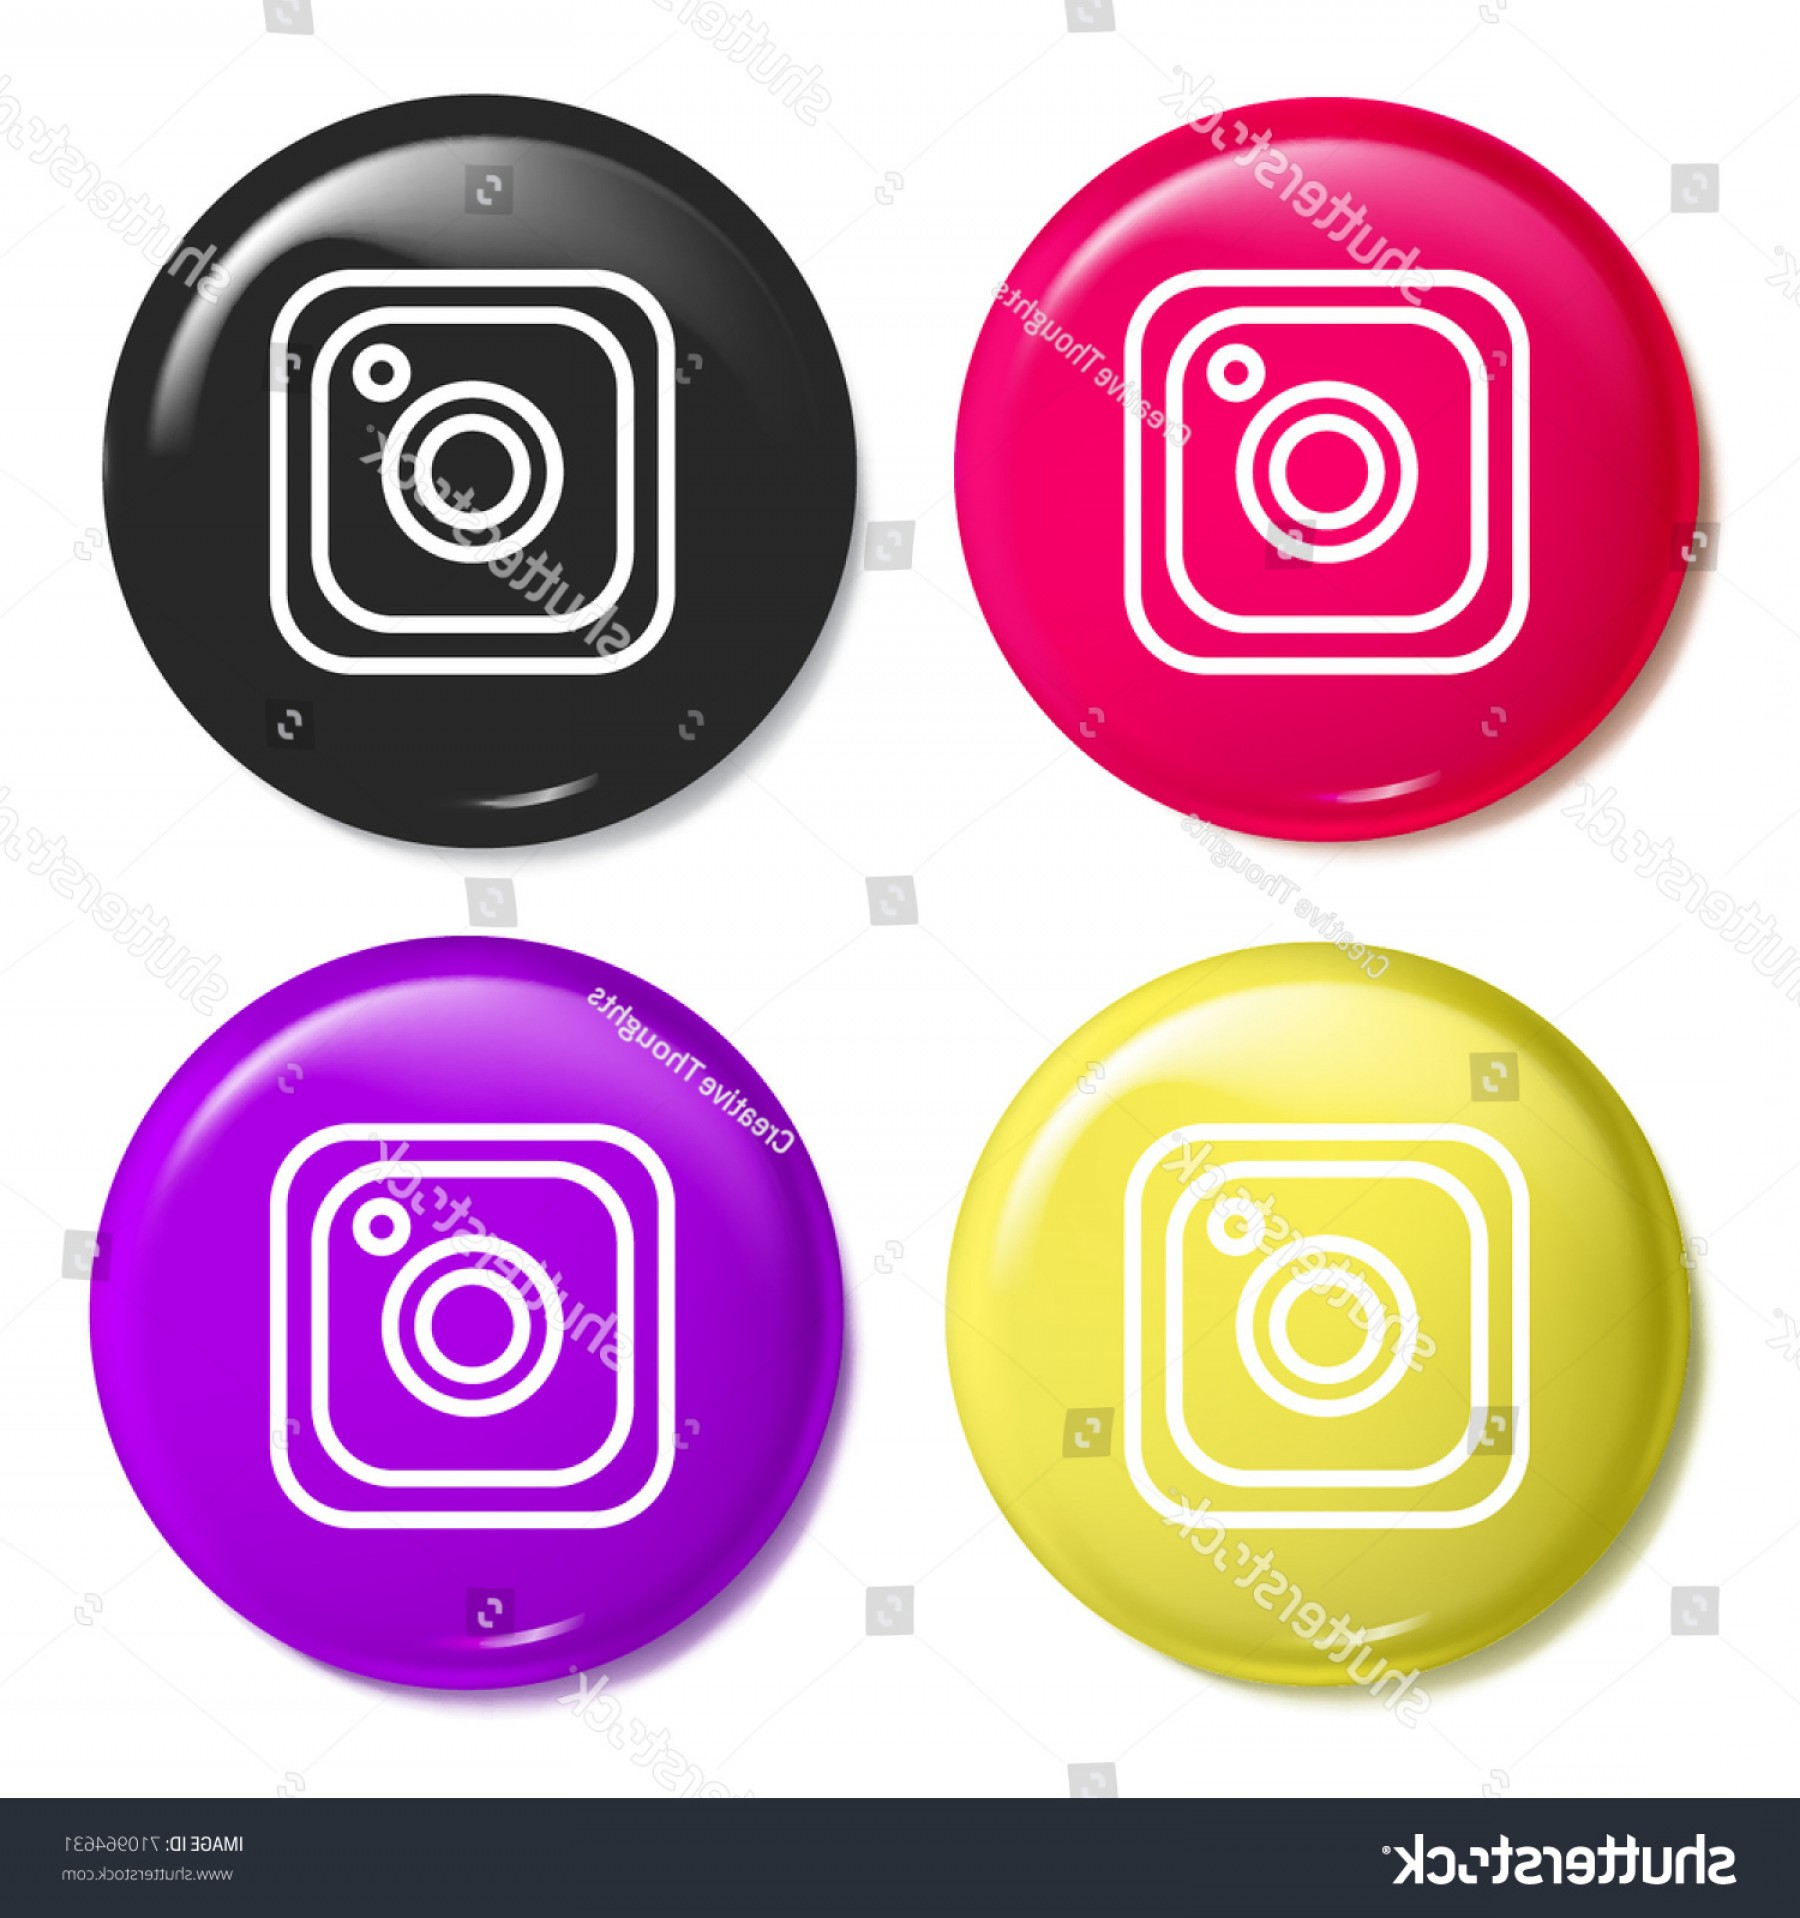 Official Instagram Icon Vector: Instagram Multi Color Glossy Badge Icon